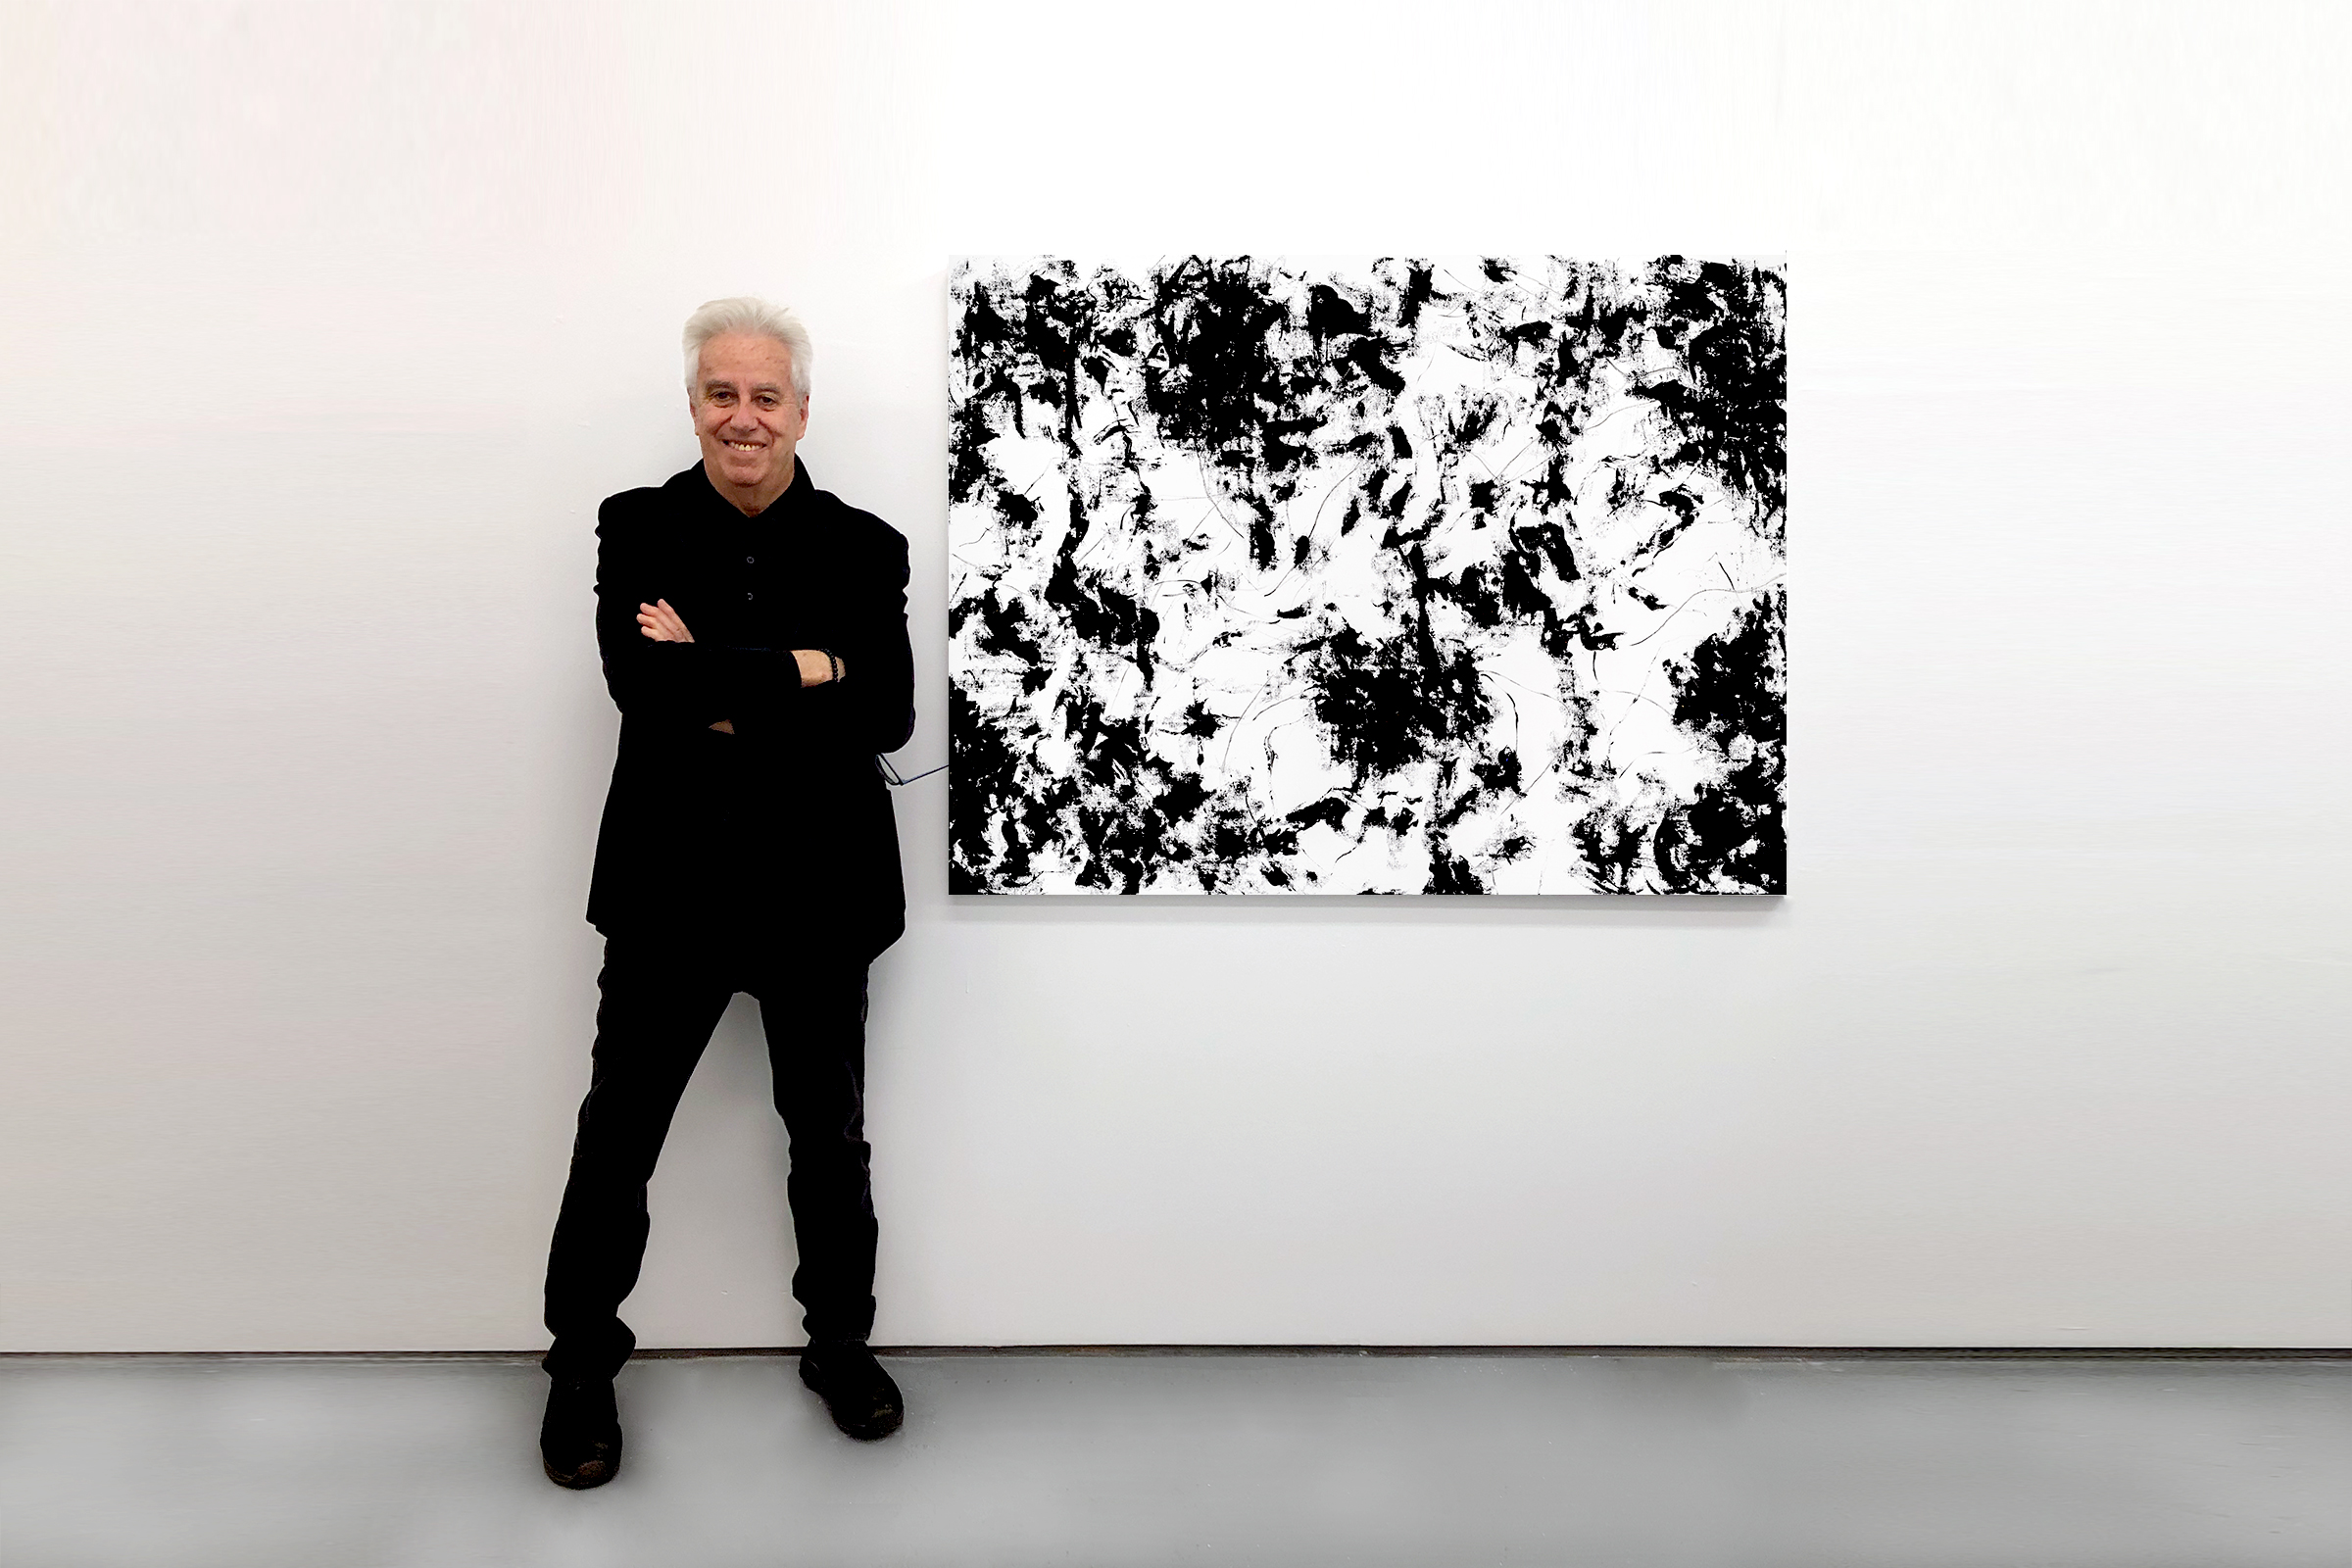 Howard Ziff Abstract Artist